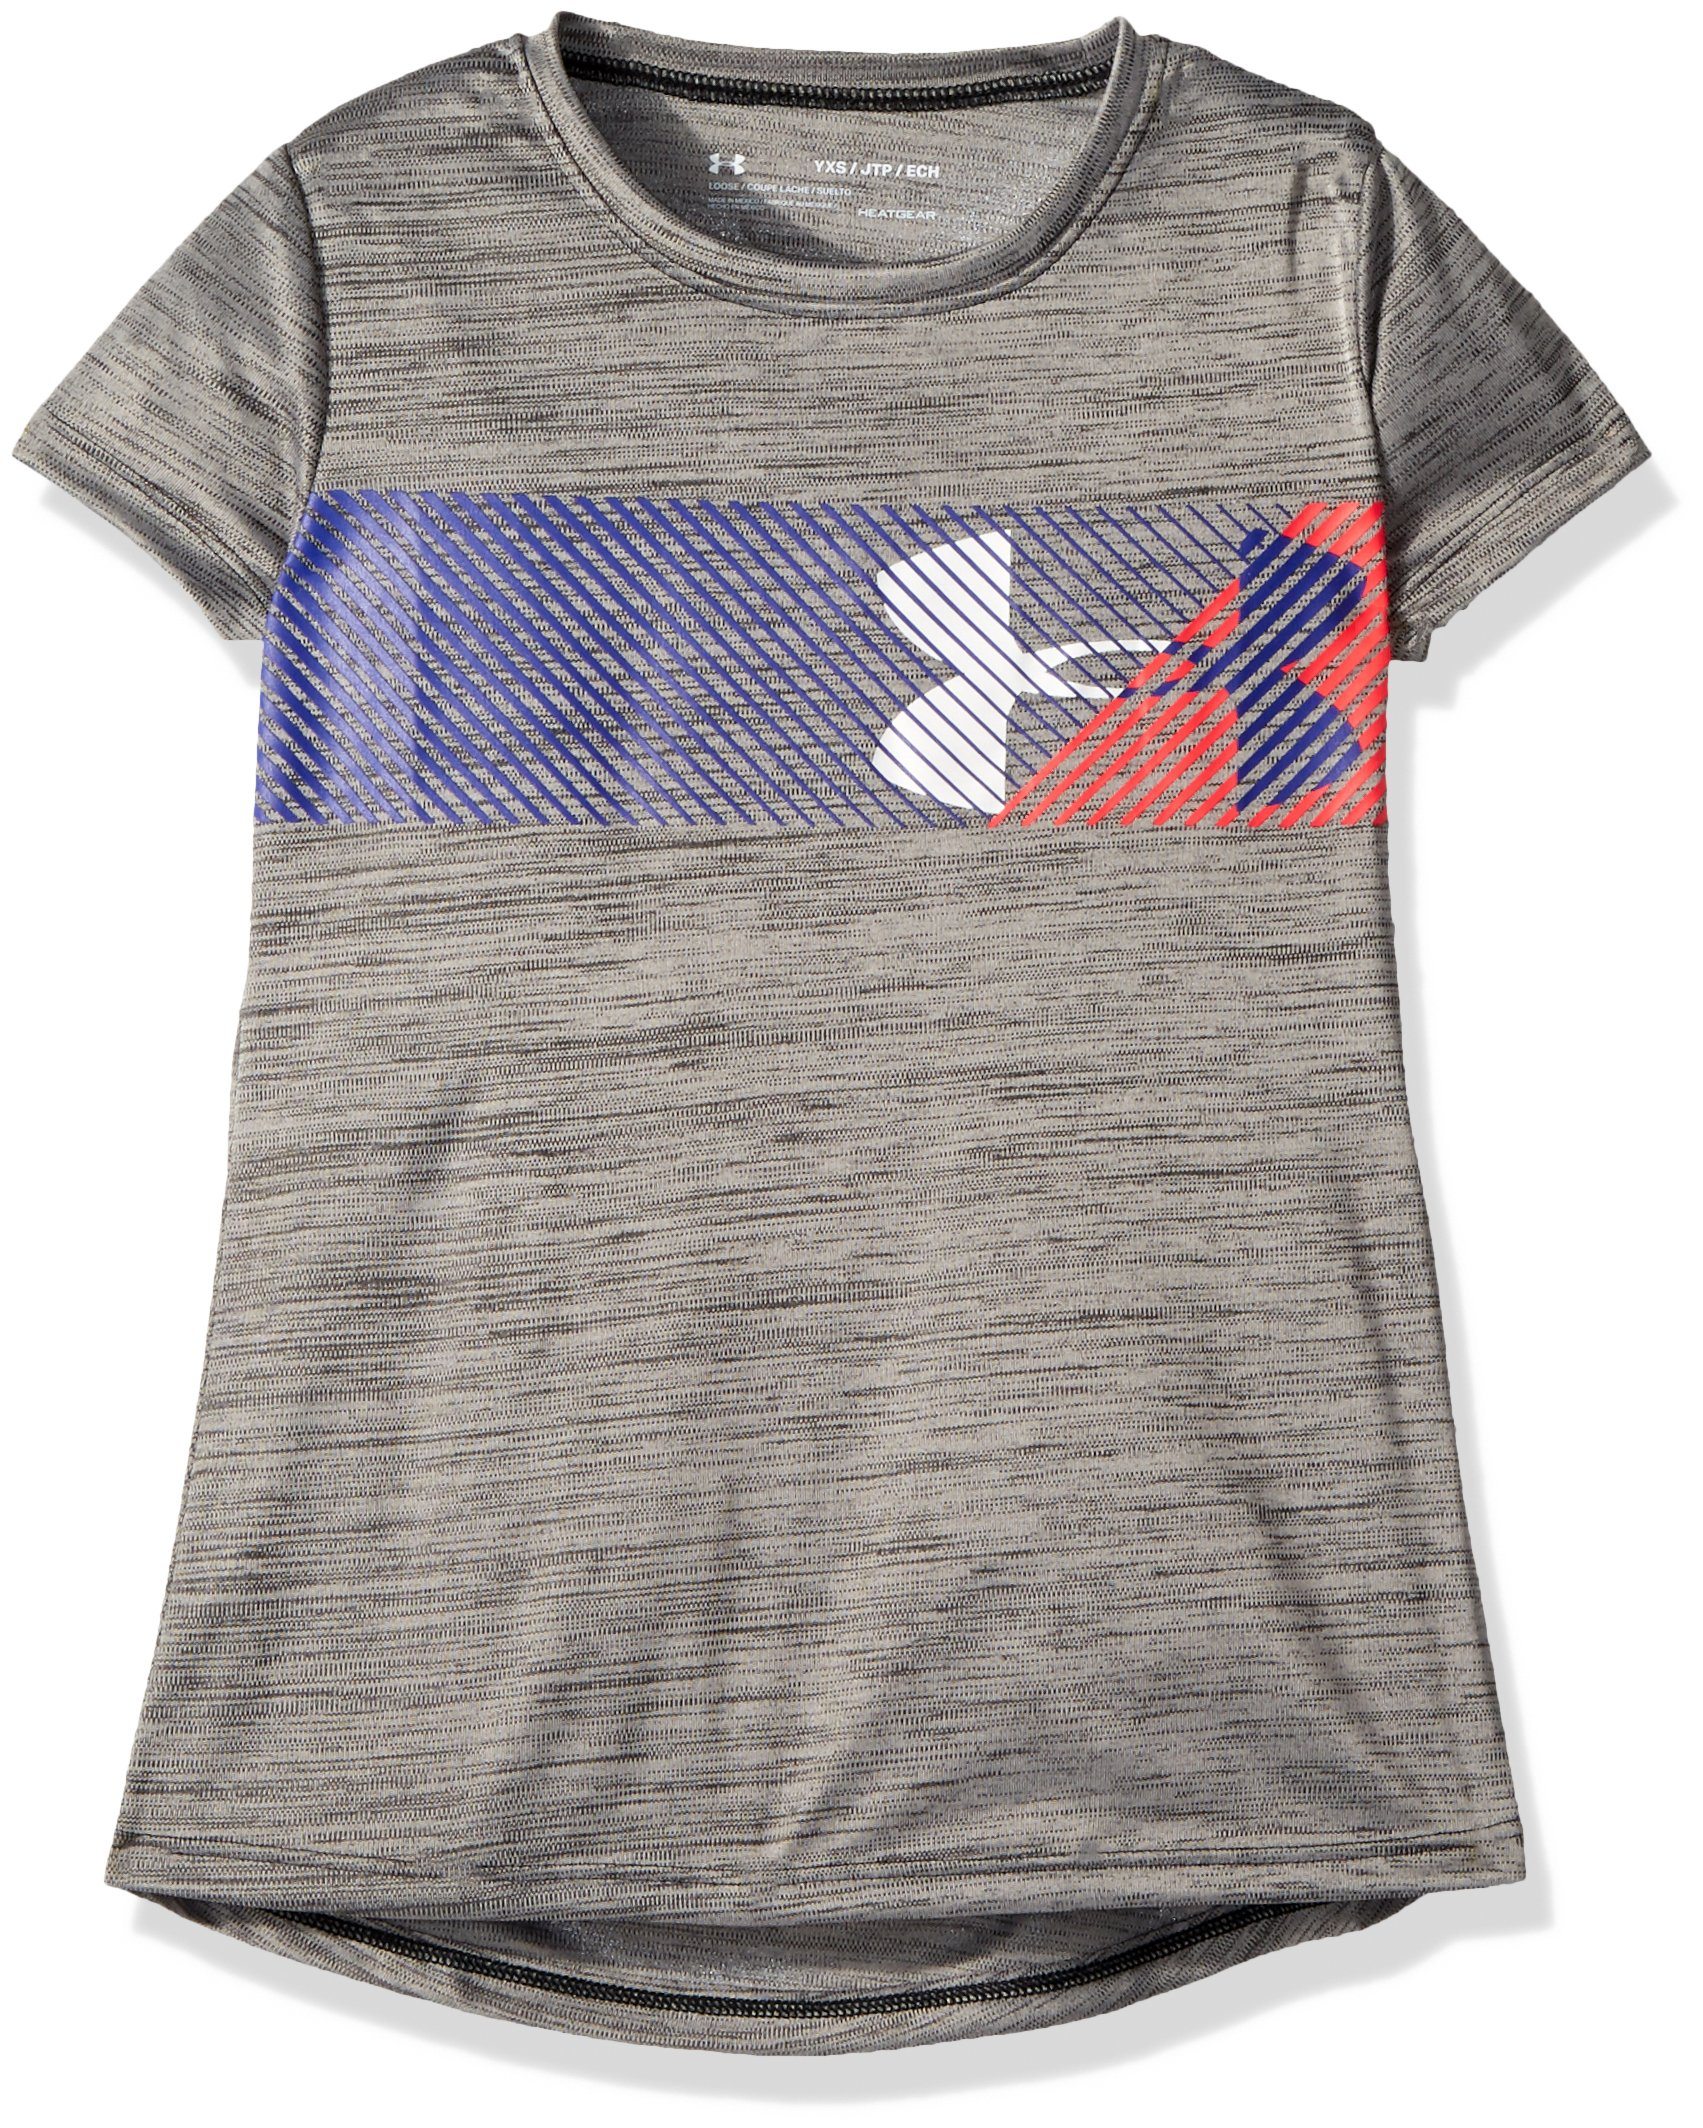 Under Armour Girls' Hybrid Big Logo T-Shirt, Black /Penta Pink, Youth X-Small